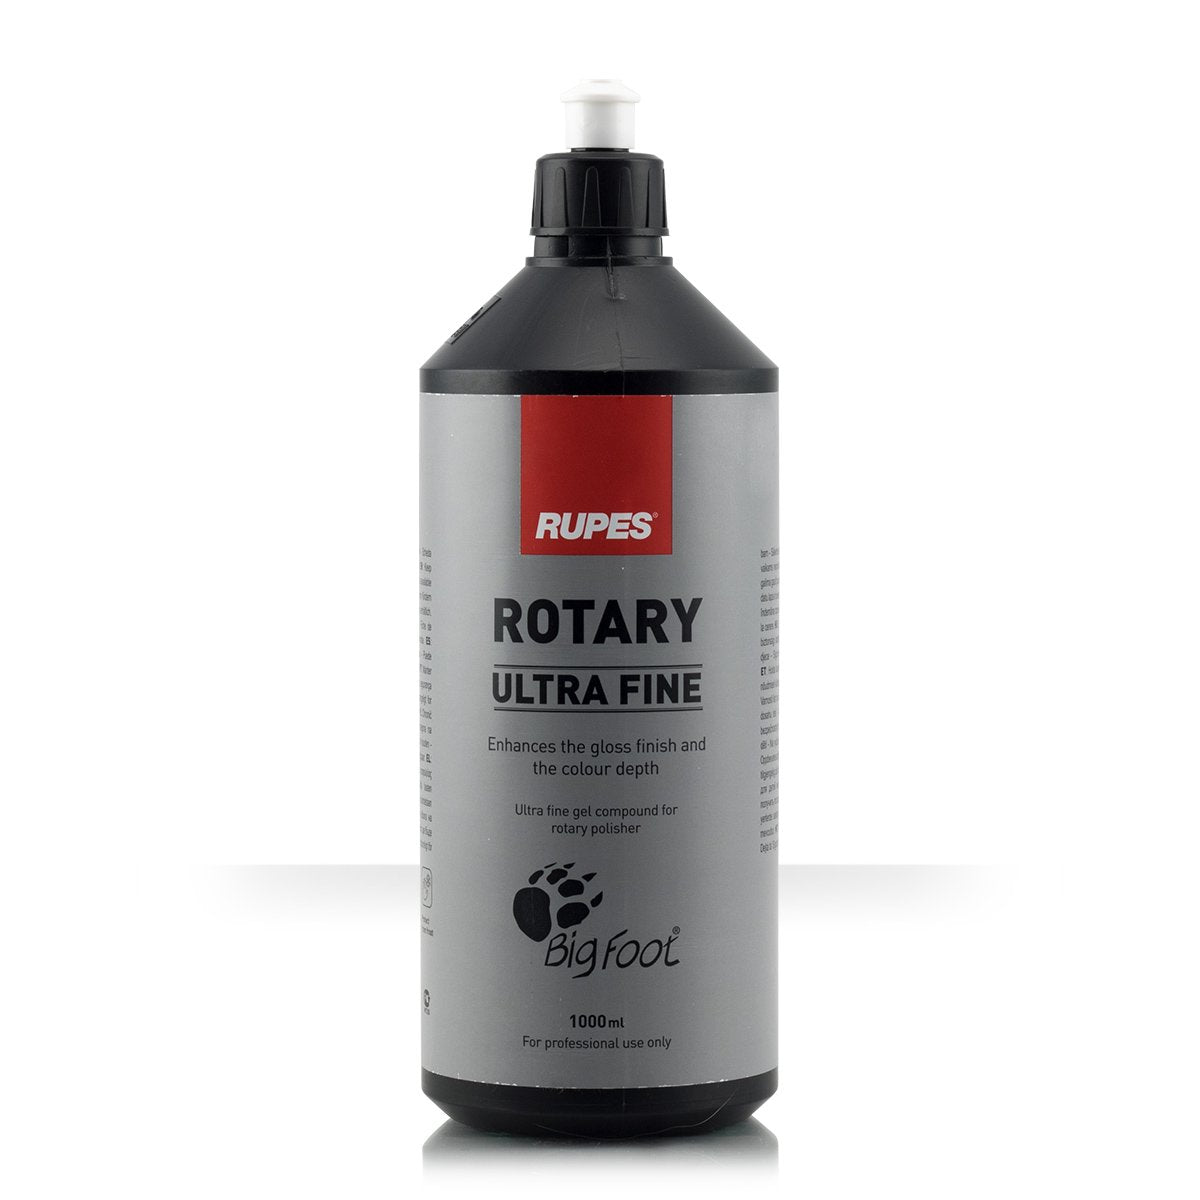 Rupes Rotary Ultra Fine Compound 1L